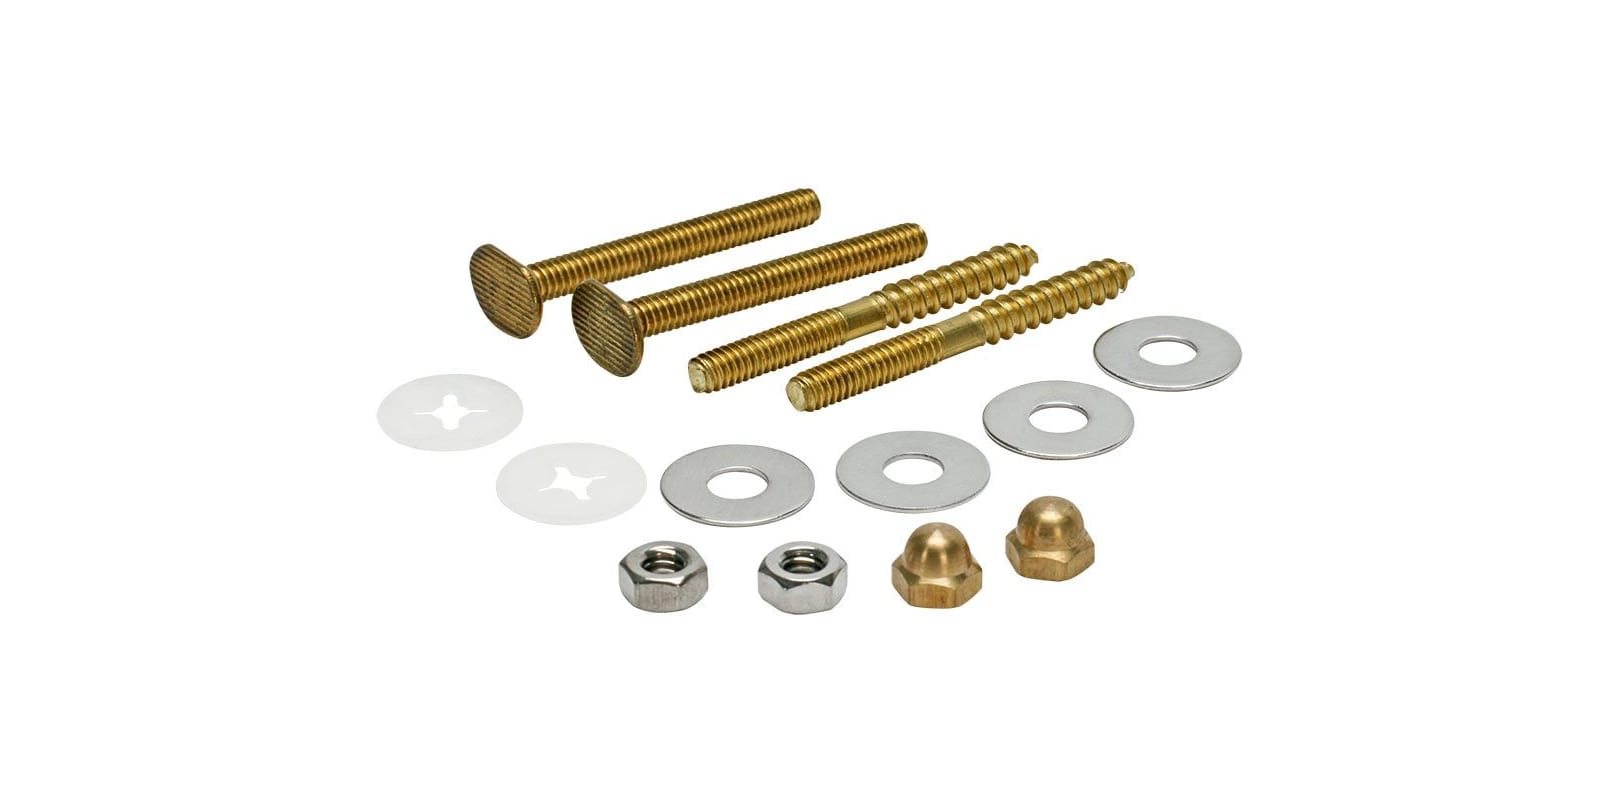 Fluidmaster 7114 Toilet Bowl Bolts with Nuts and Washers photo